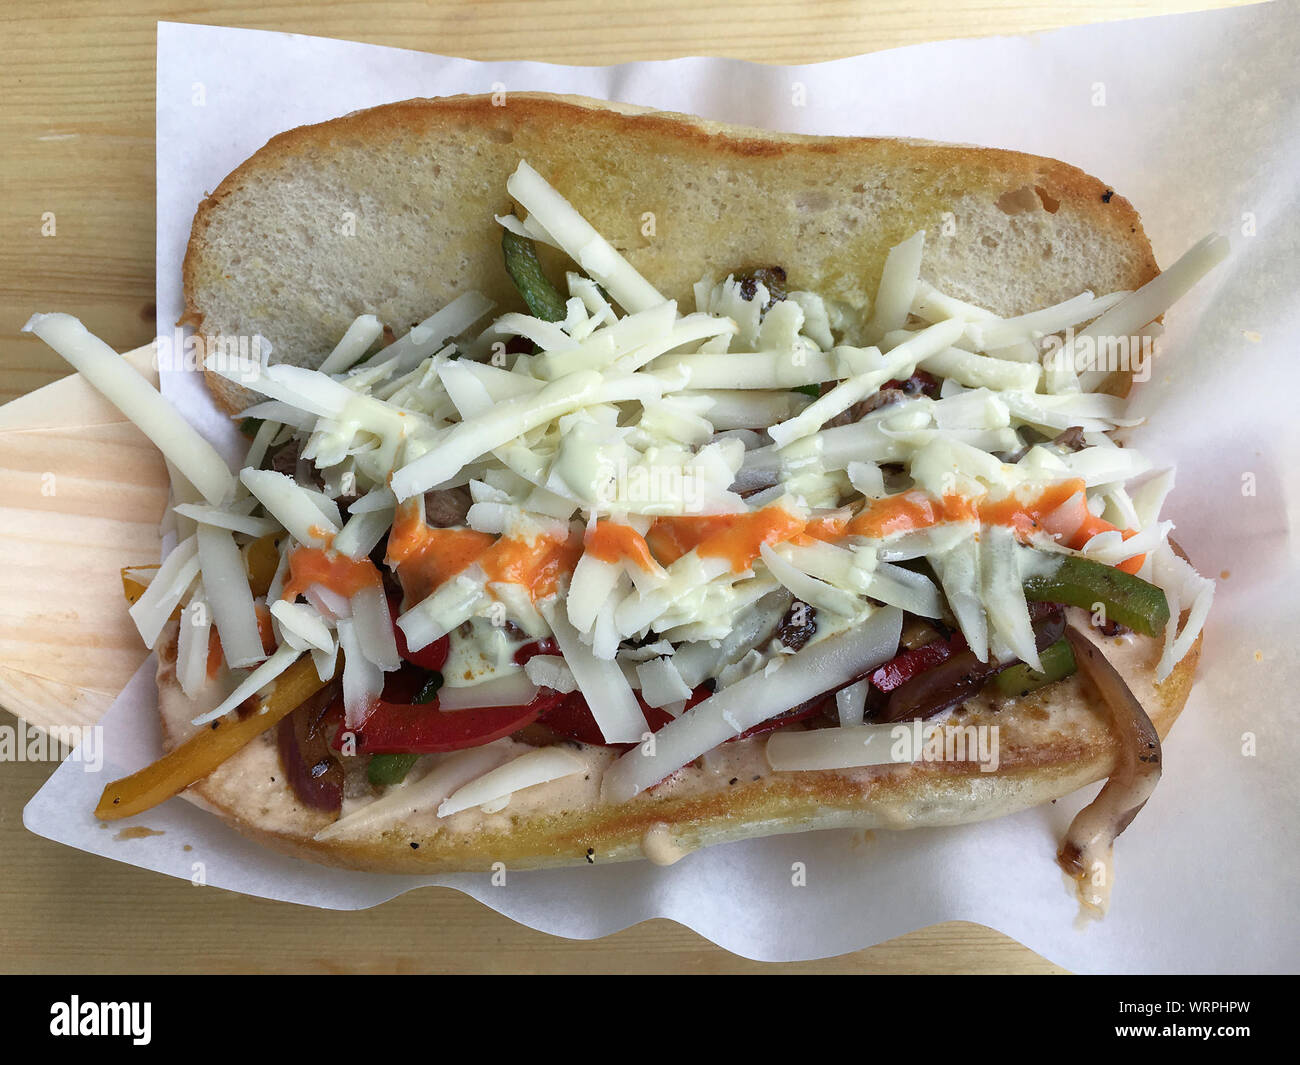 Close Up Of Philadelphia Cheese Steak Sandwich On Plate Stock Photo Alamy